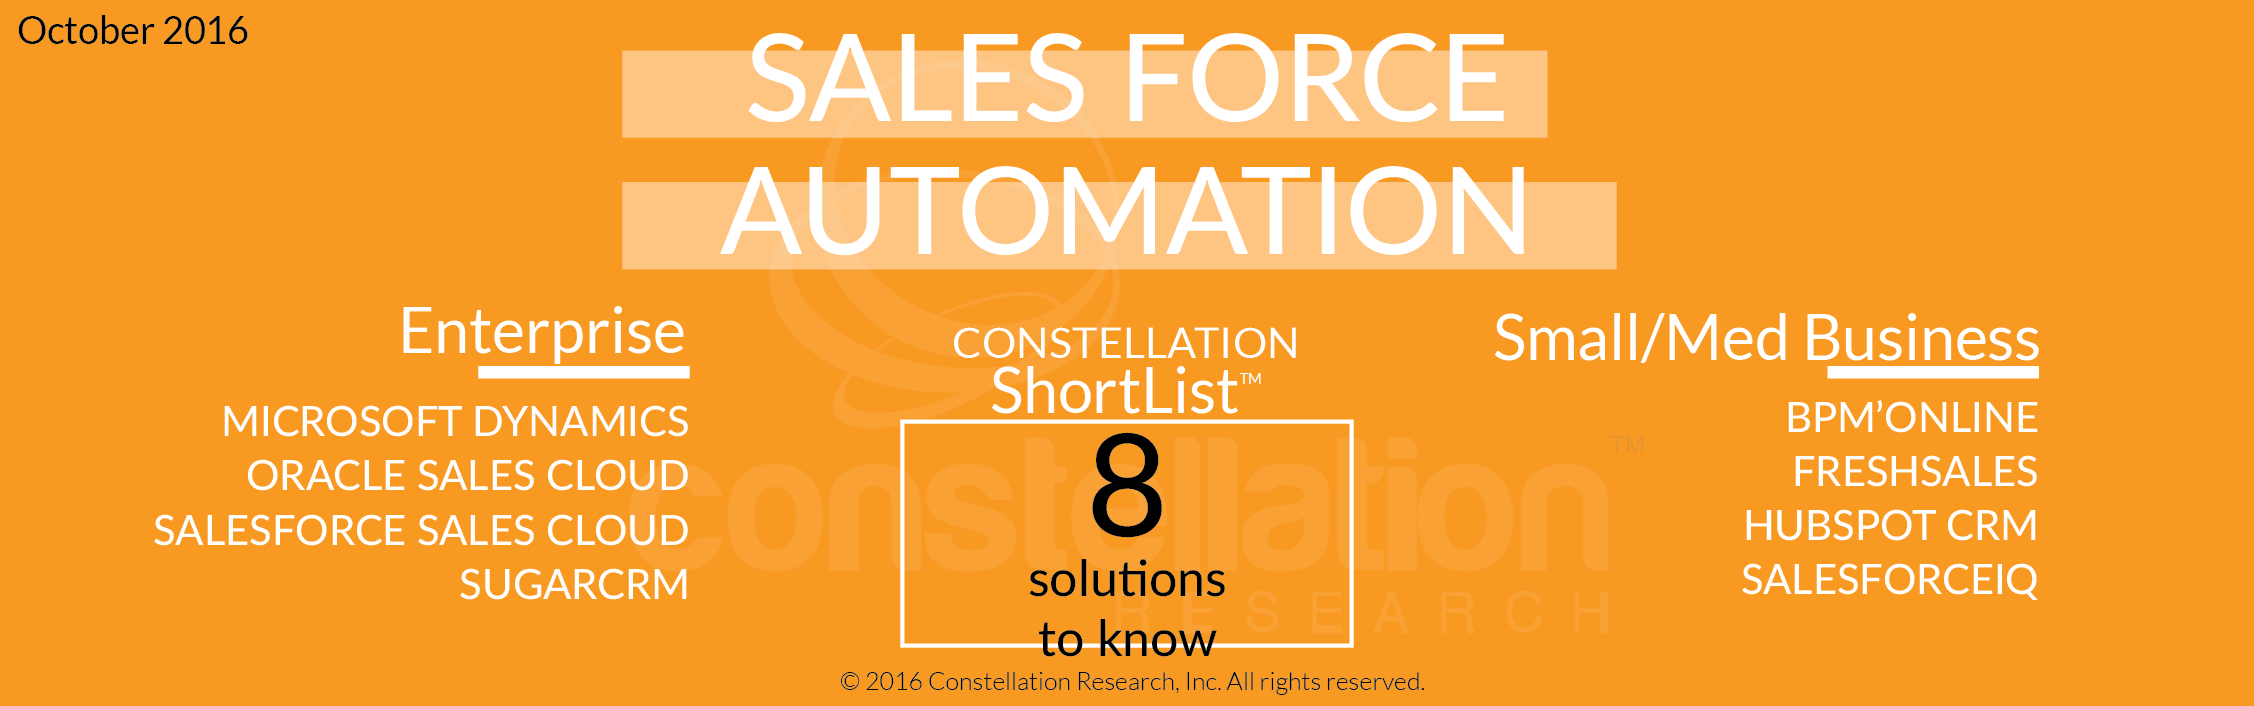 constellation-research-sales-force-automation-freshsales